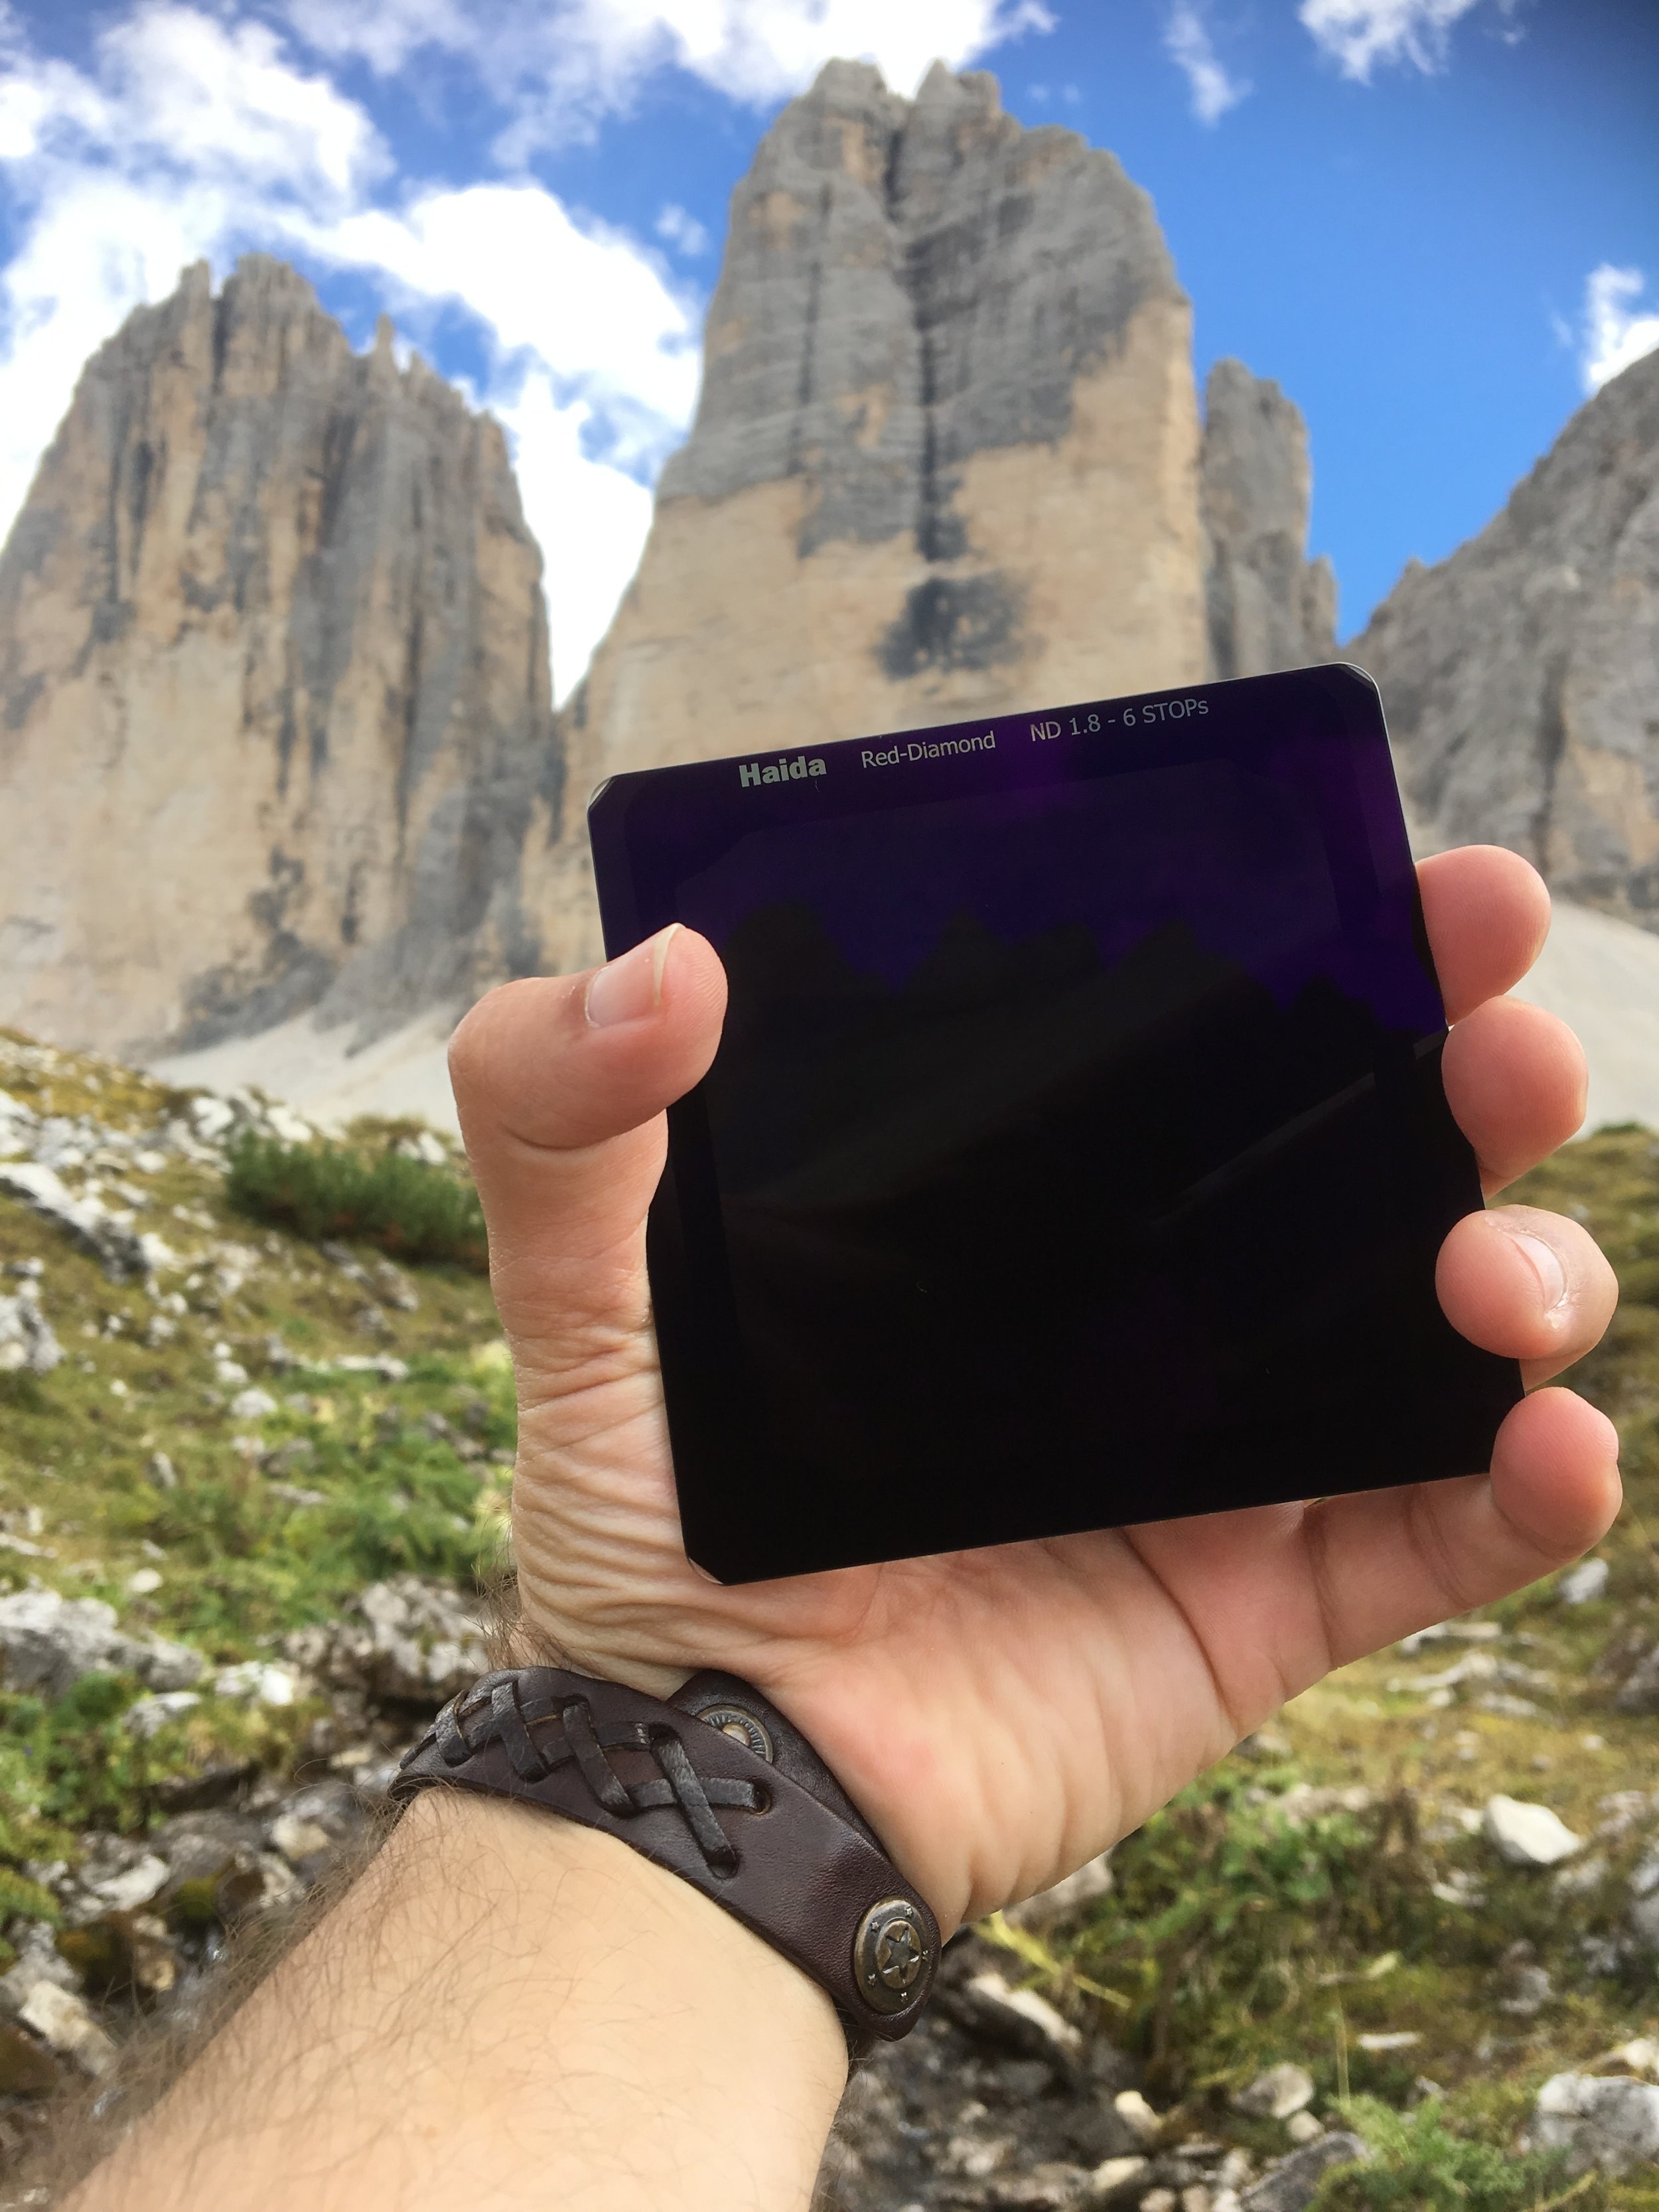 I had the new Haida red-diamond filter with me at the iconic Drei Zinnen / Tre Cime in the Italian Dolomites (a bts image shot with my iPhone)